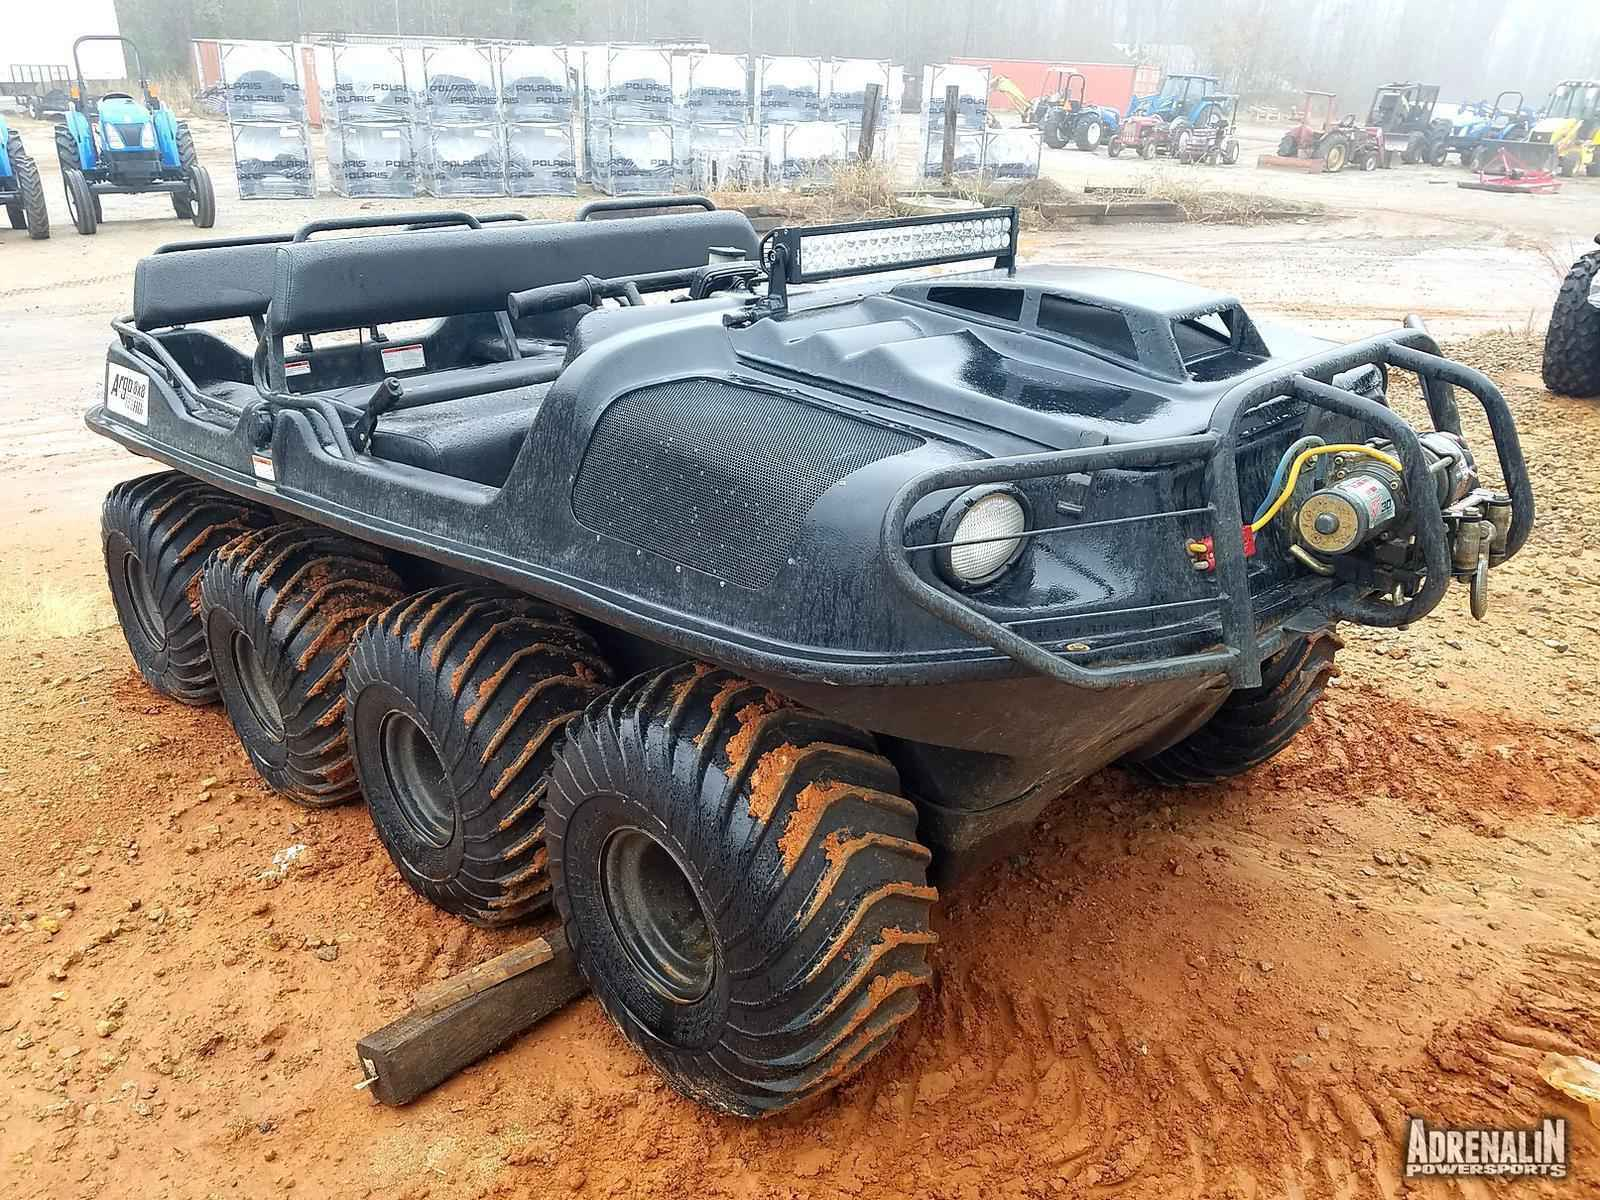 Used 2012 Argo 8X8 750 HDi Black ATVs For Sale in Georgia ...